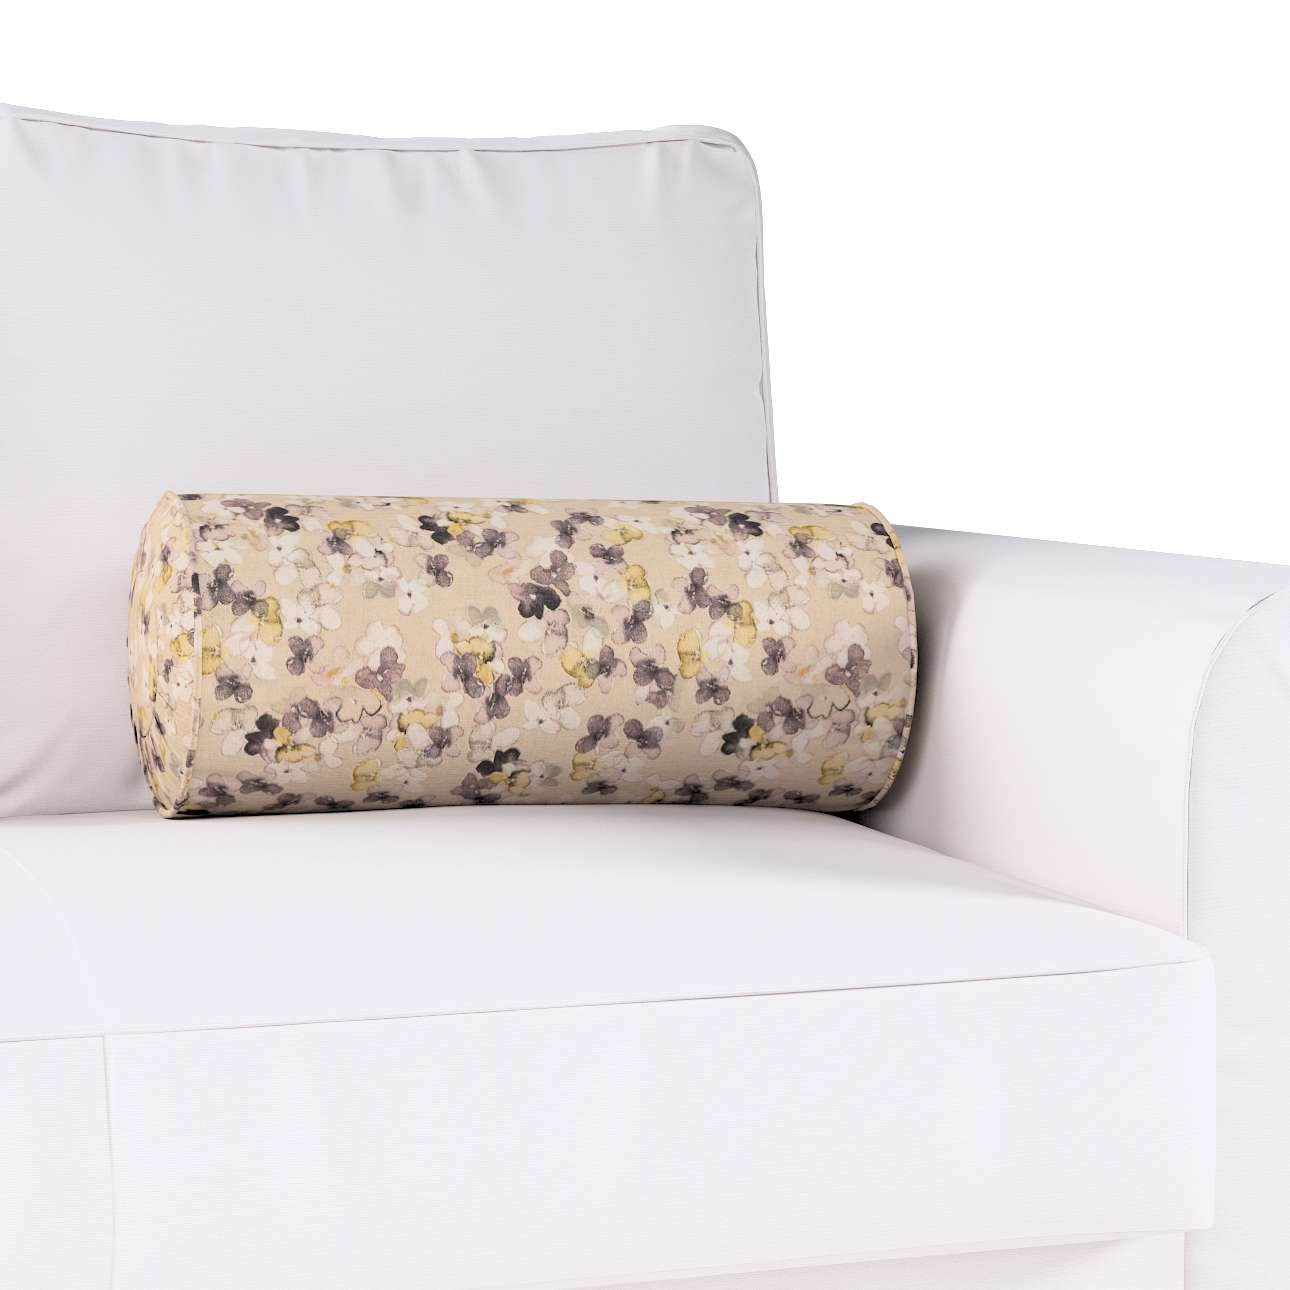 Bolster cushion with pleats in collection Londres, fabric: 140-48